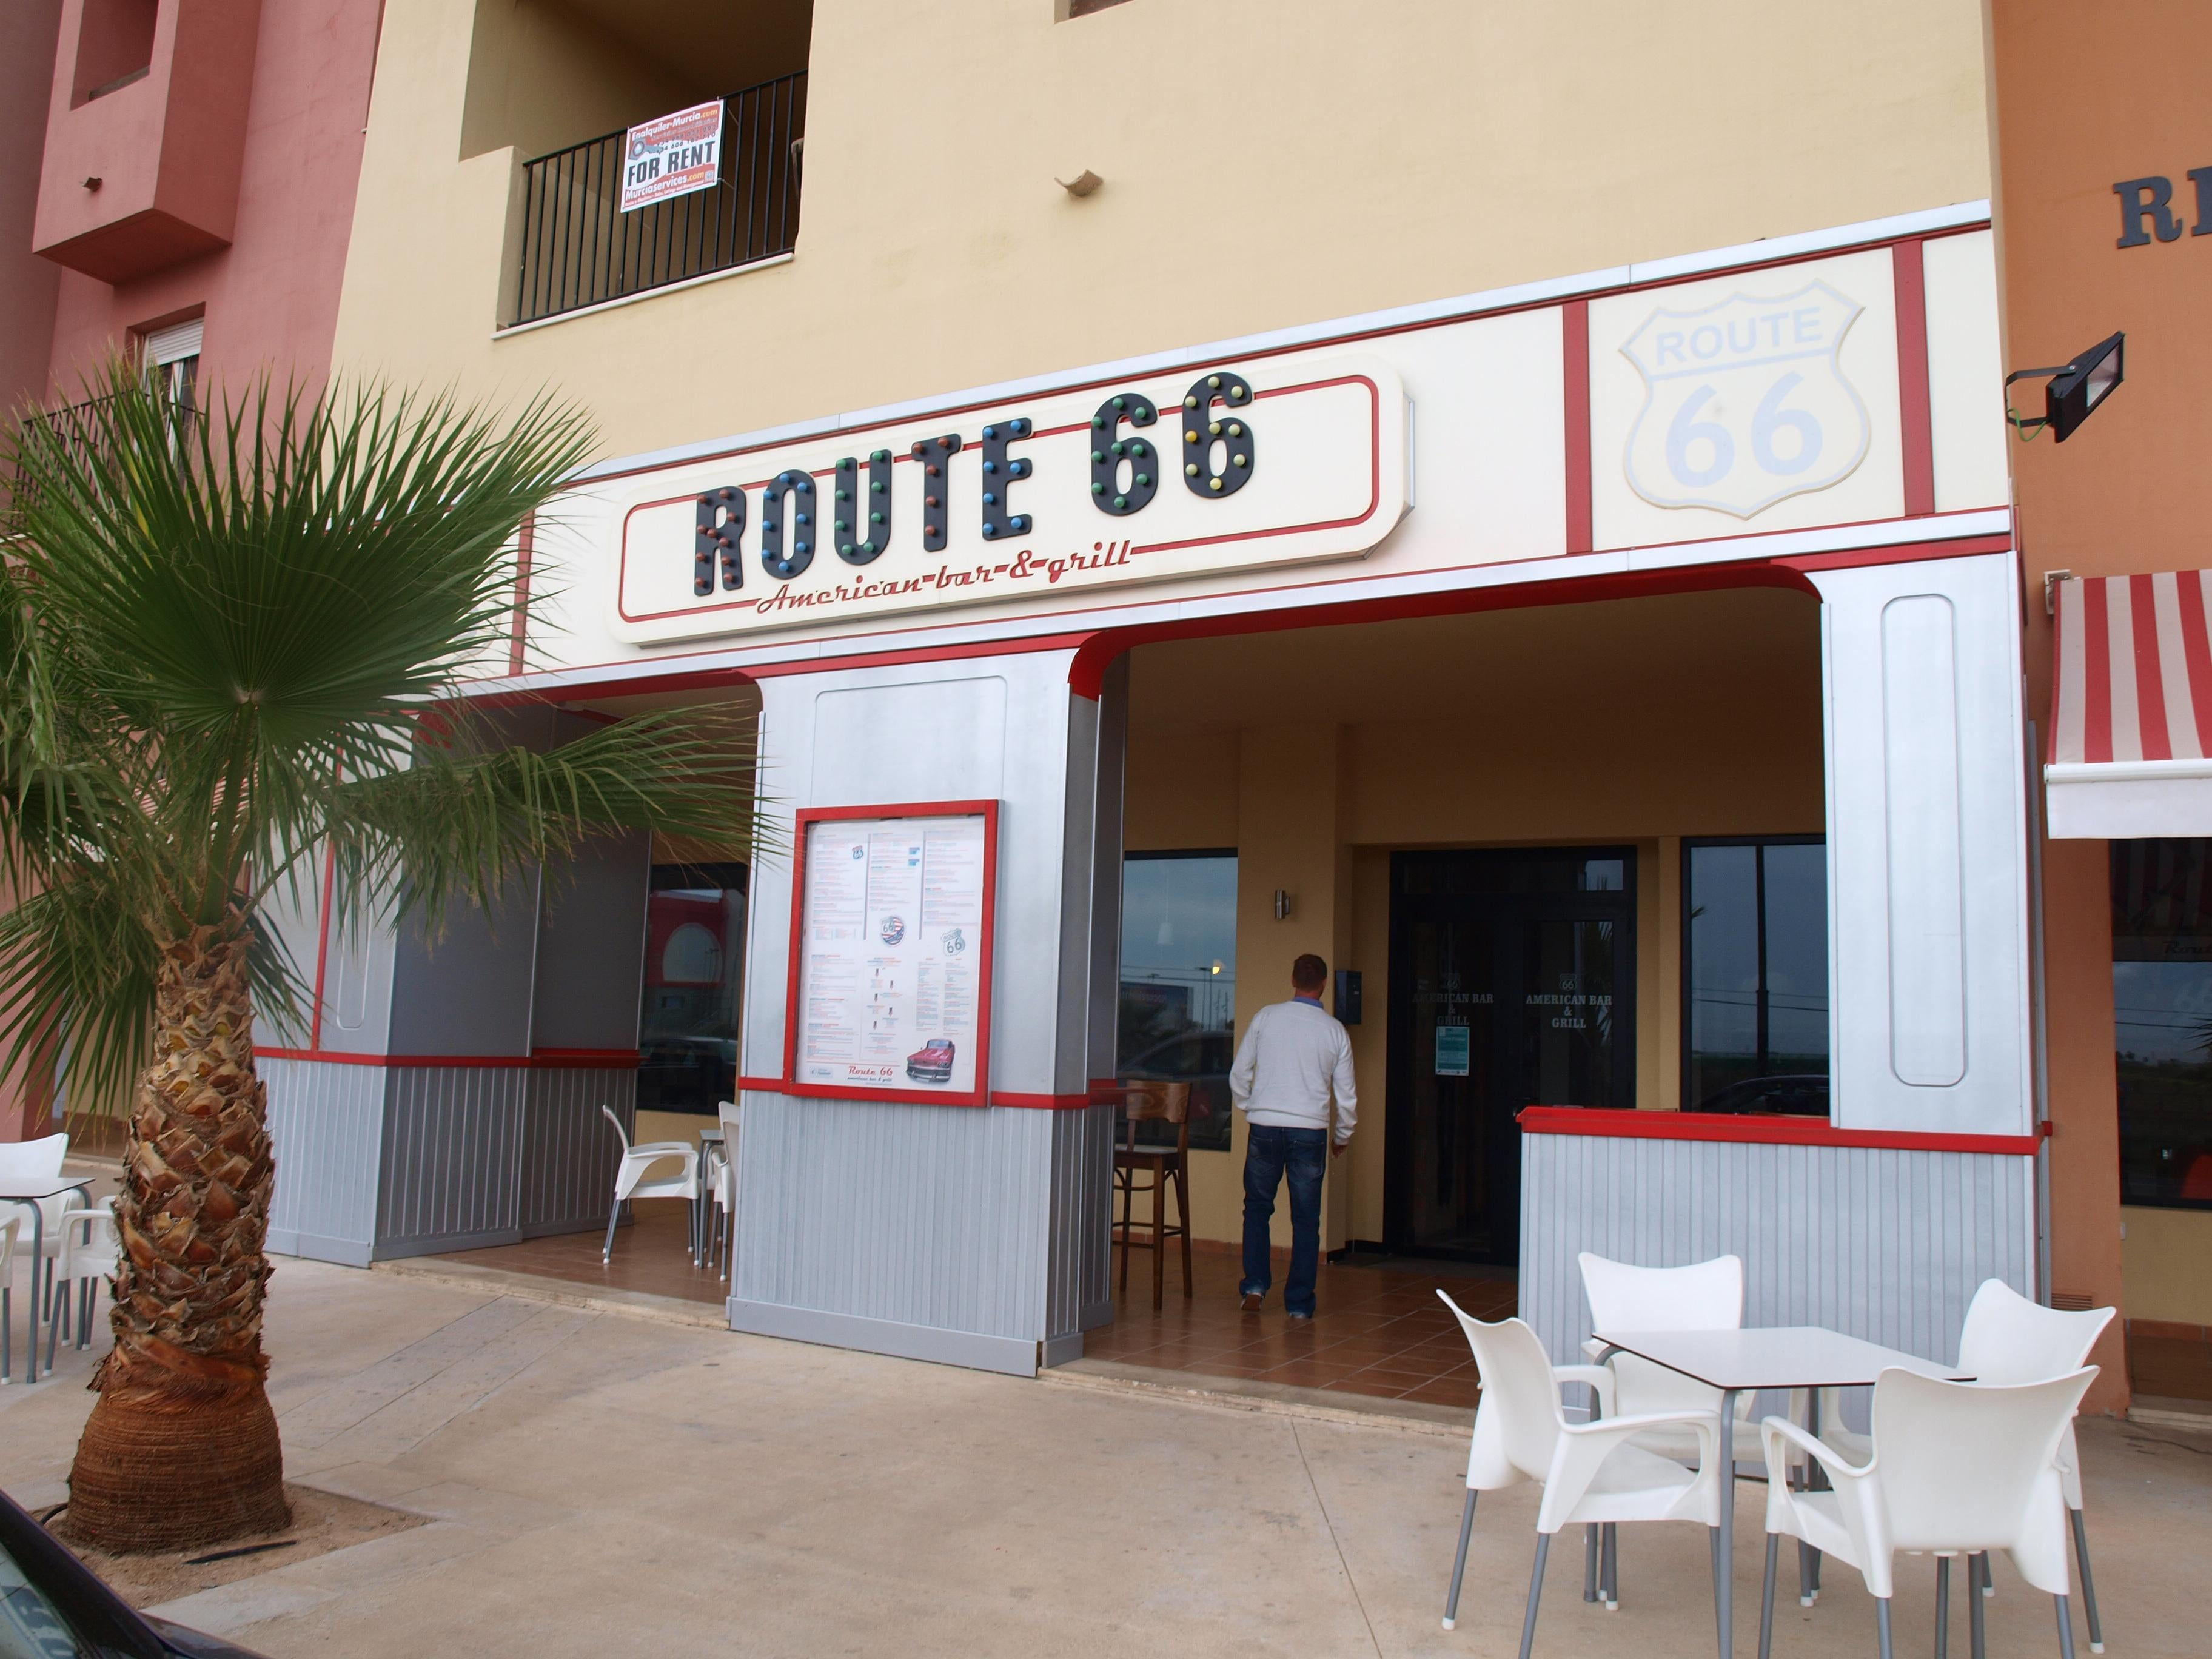 photos of route 66 bar & grill - images